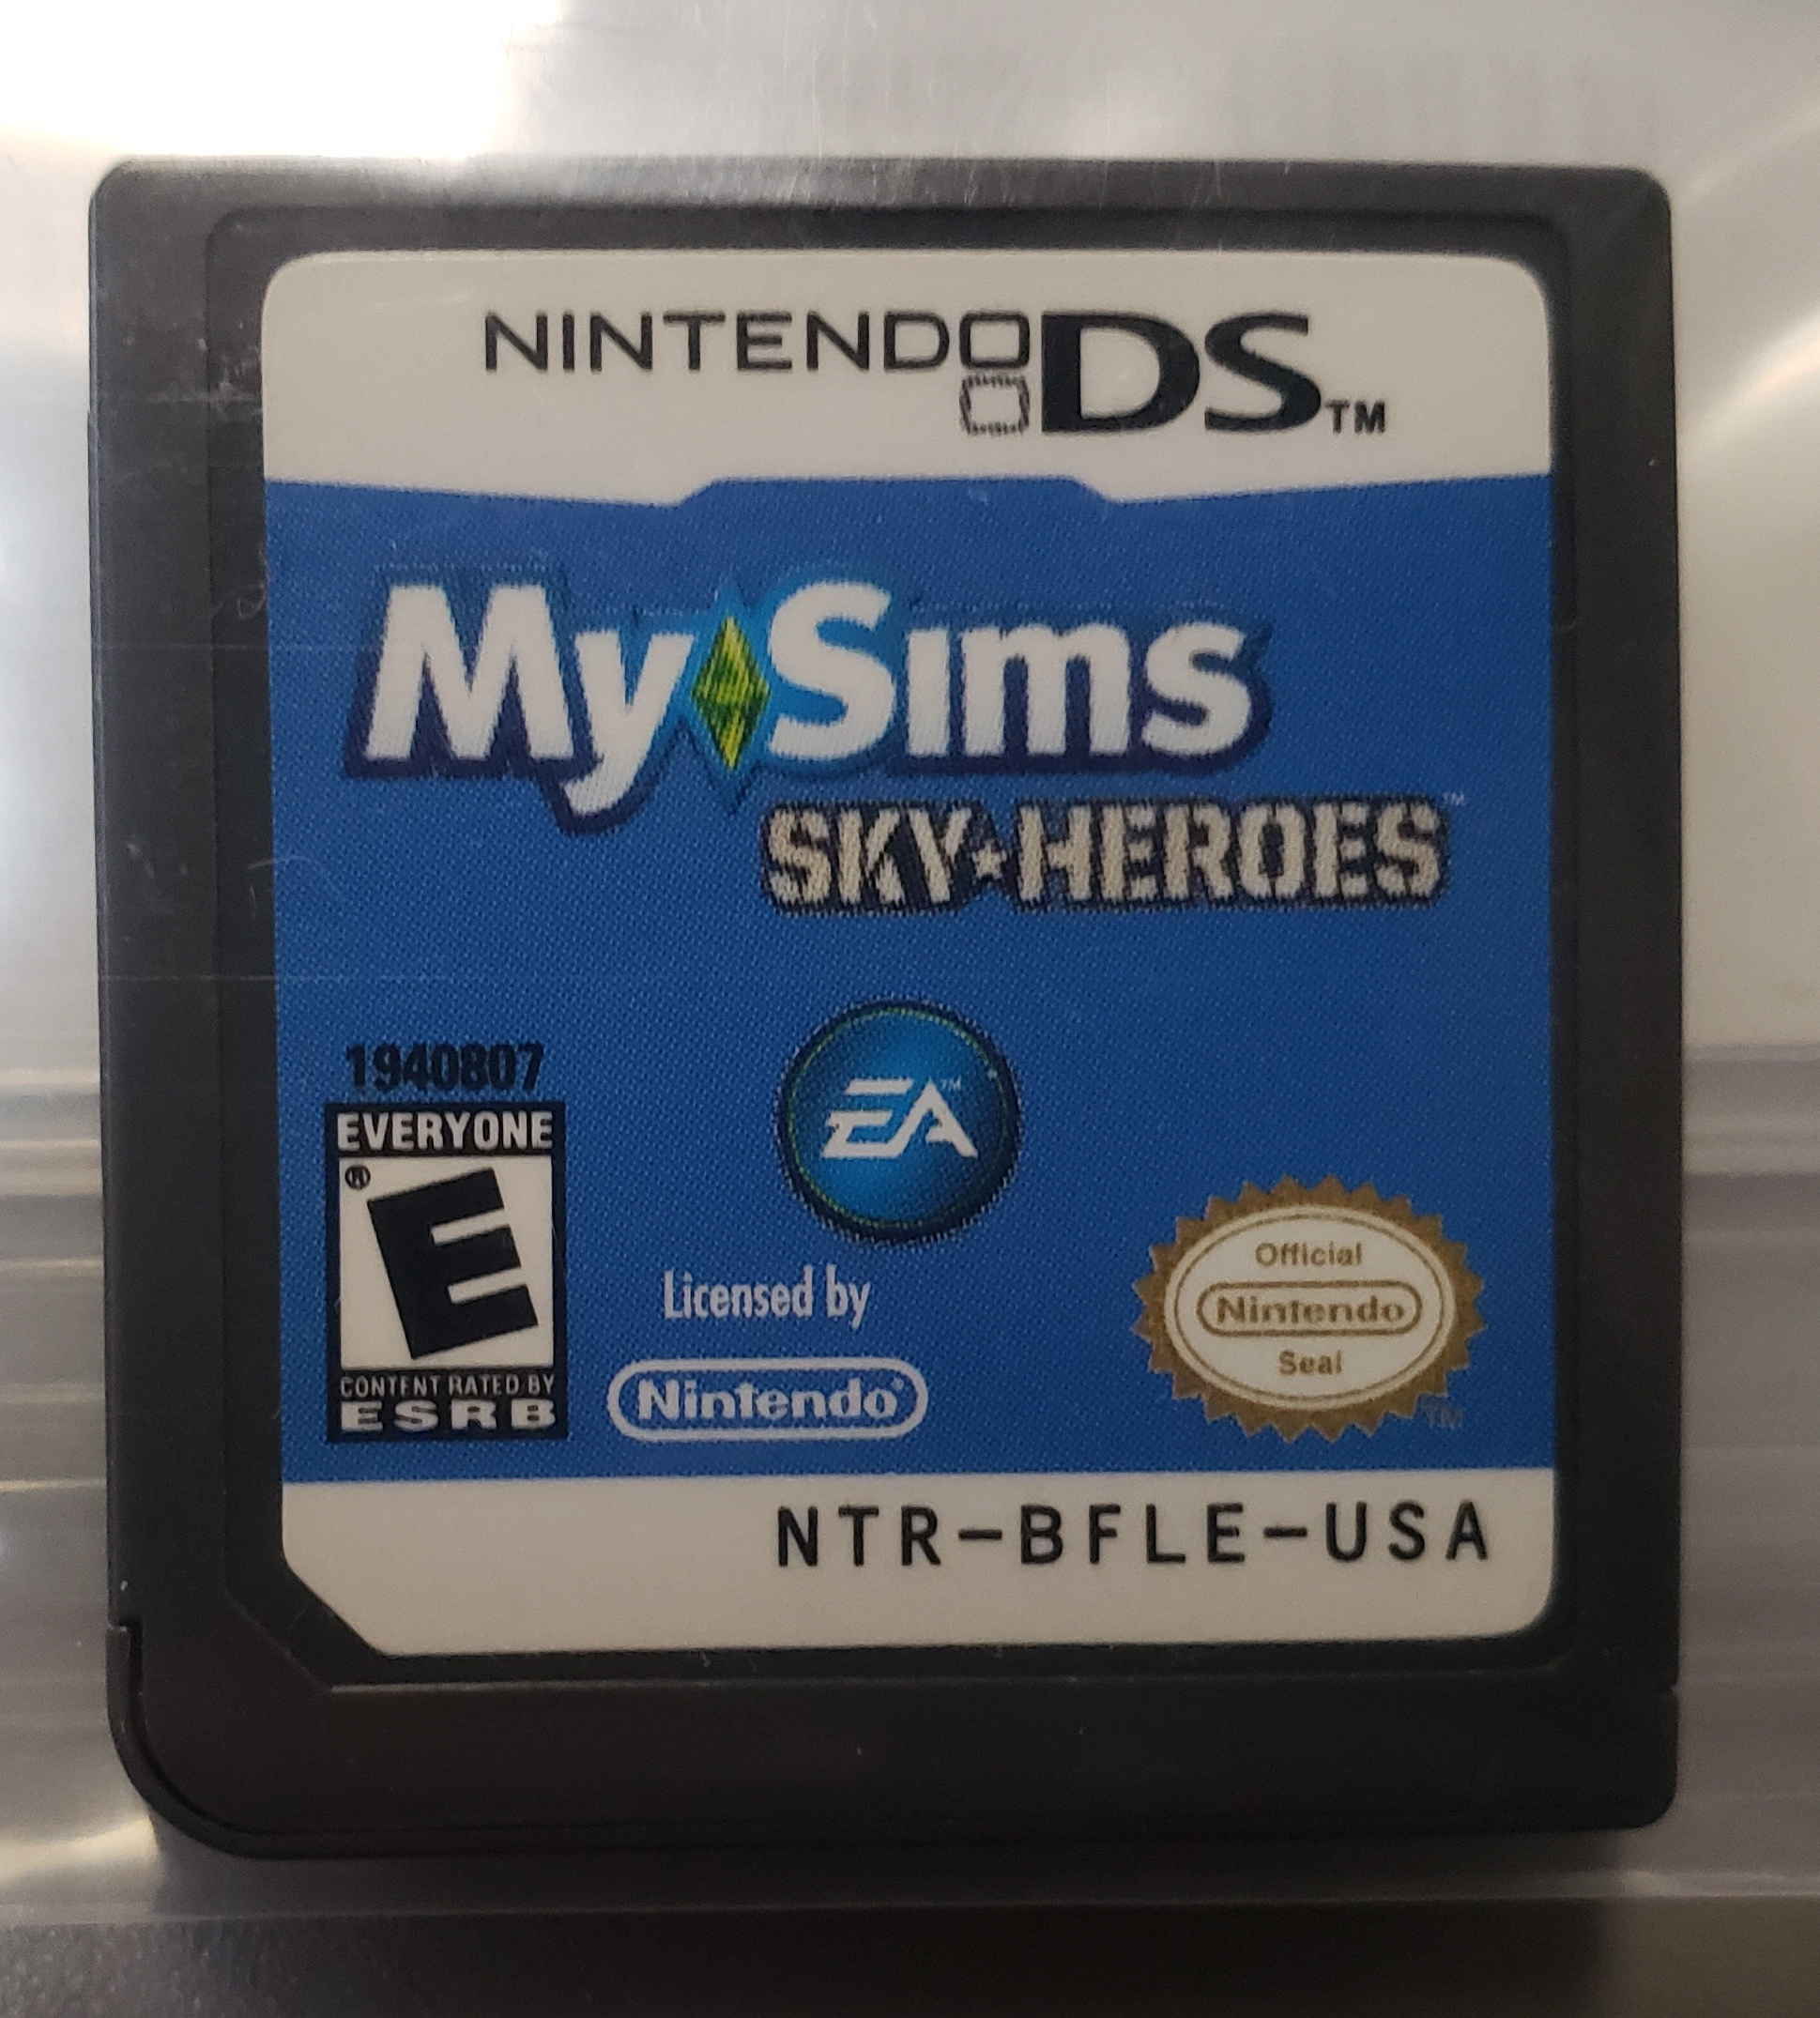 MY SIMS SKY-HEROES, NINTENDO DS GAME